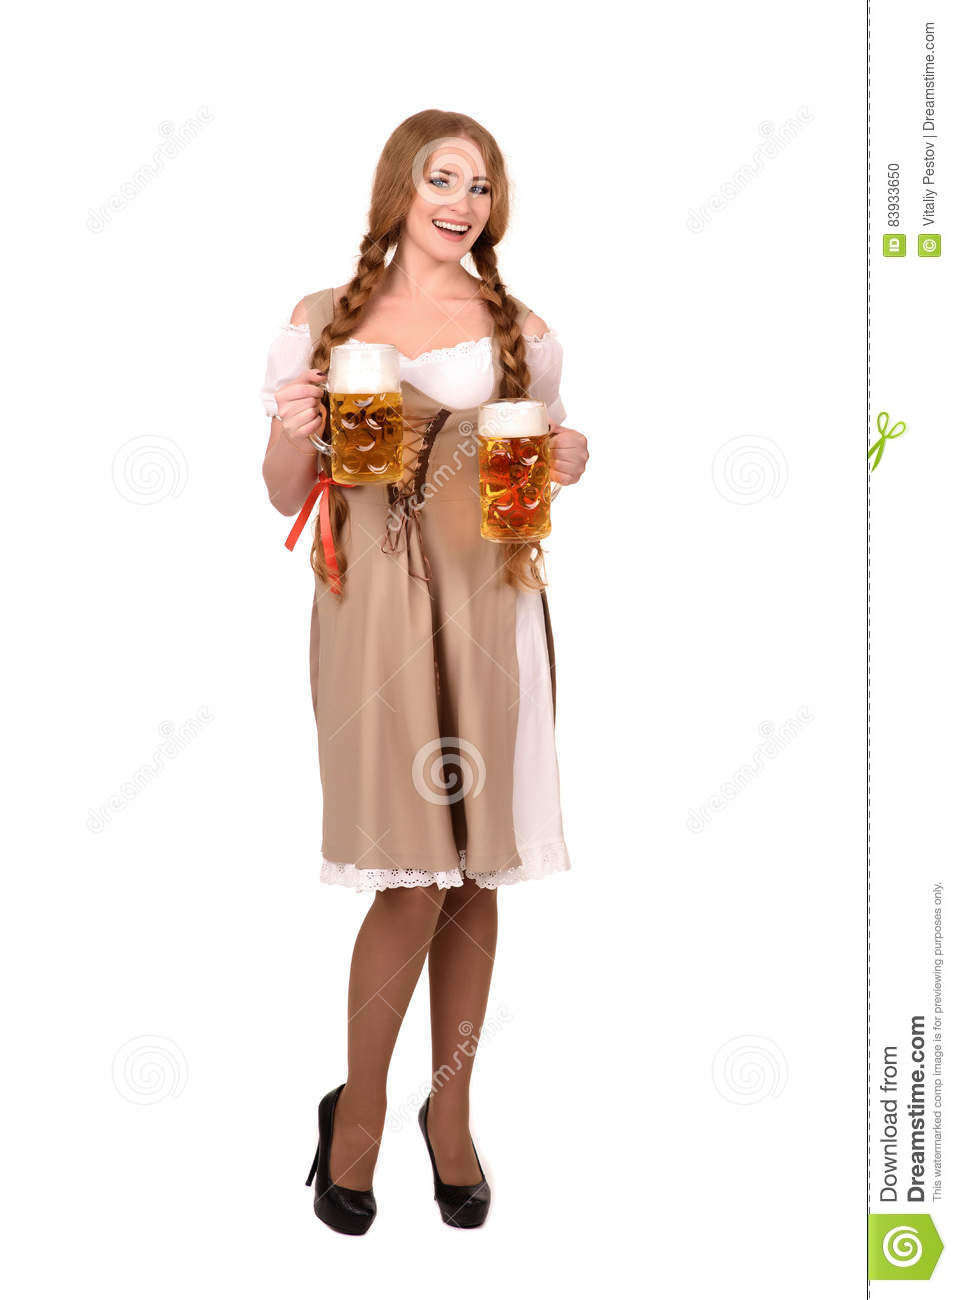 9736cf0acacd Portrait of a Happy Woman Wearing a Traditional Oktoberfest Costume with  Two Beer Glasses and Holding a Sign. Isolated on White Background